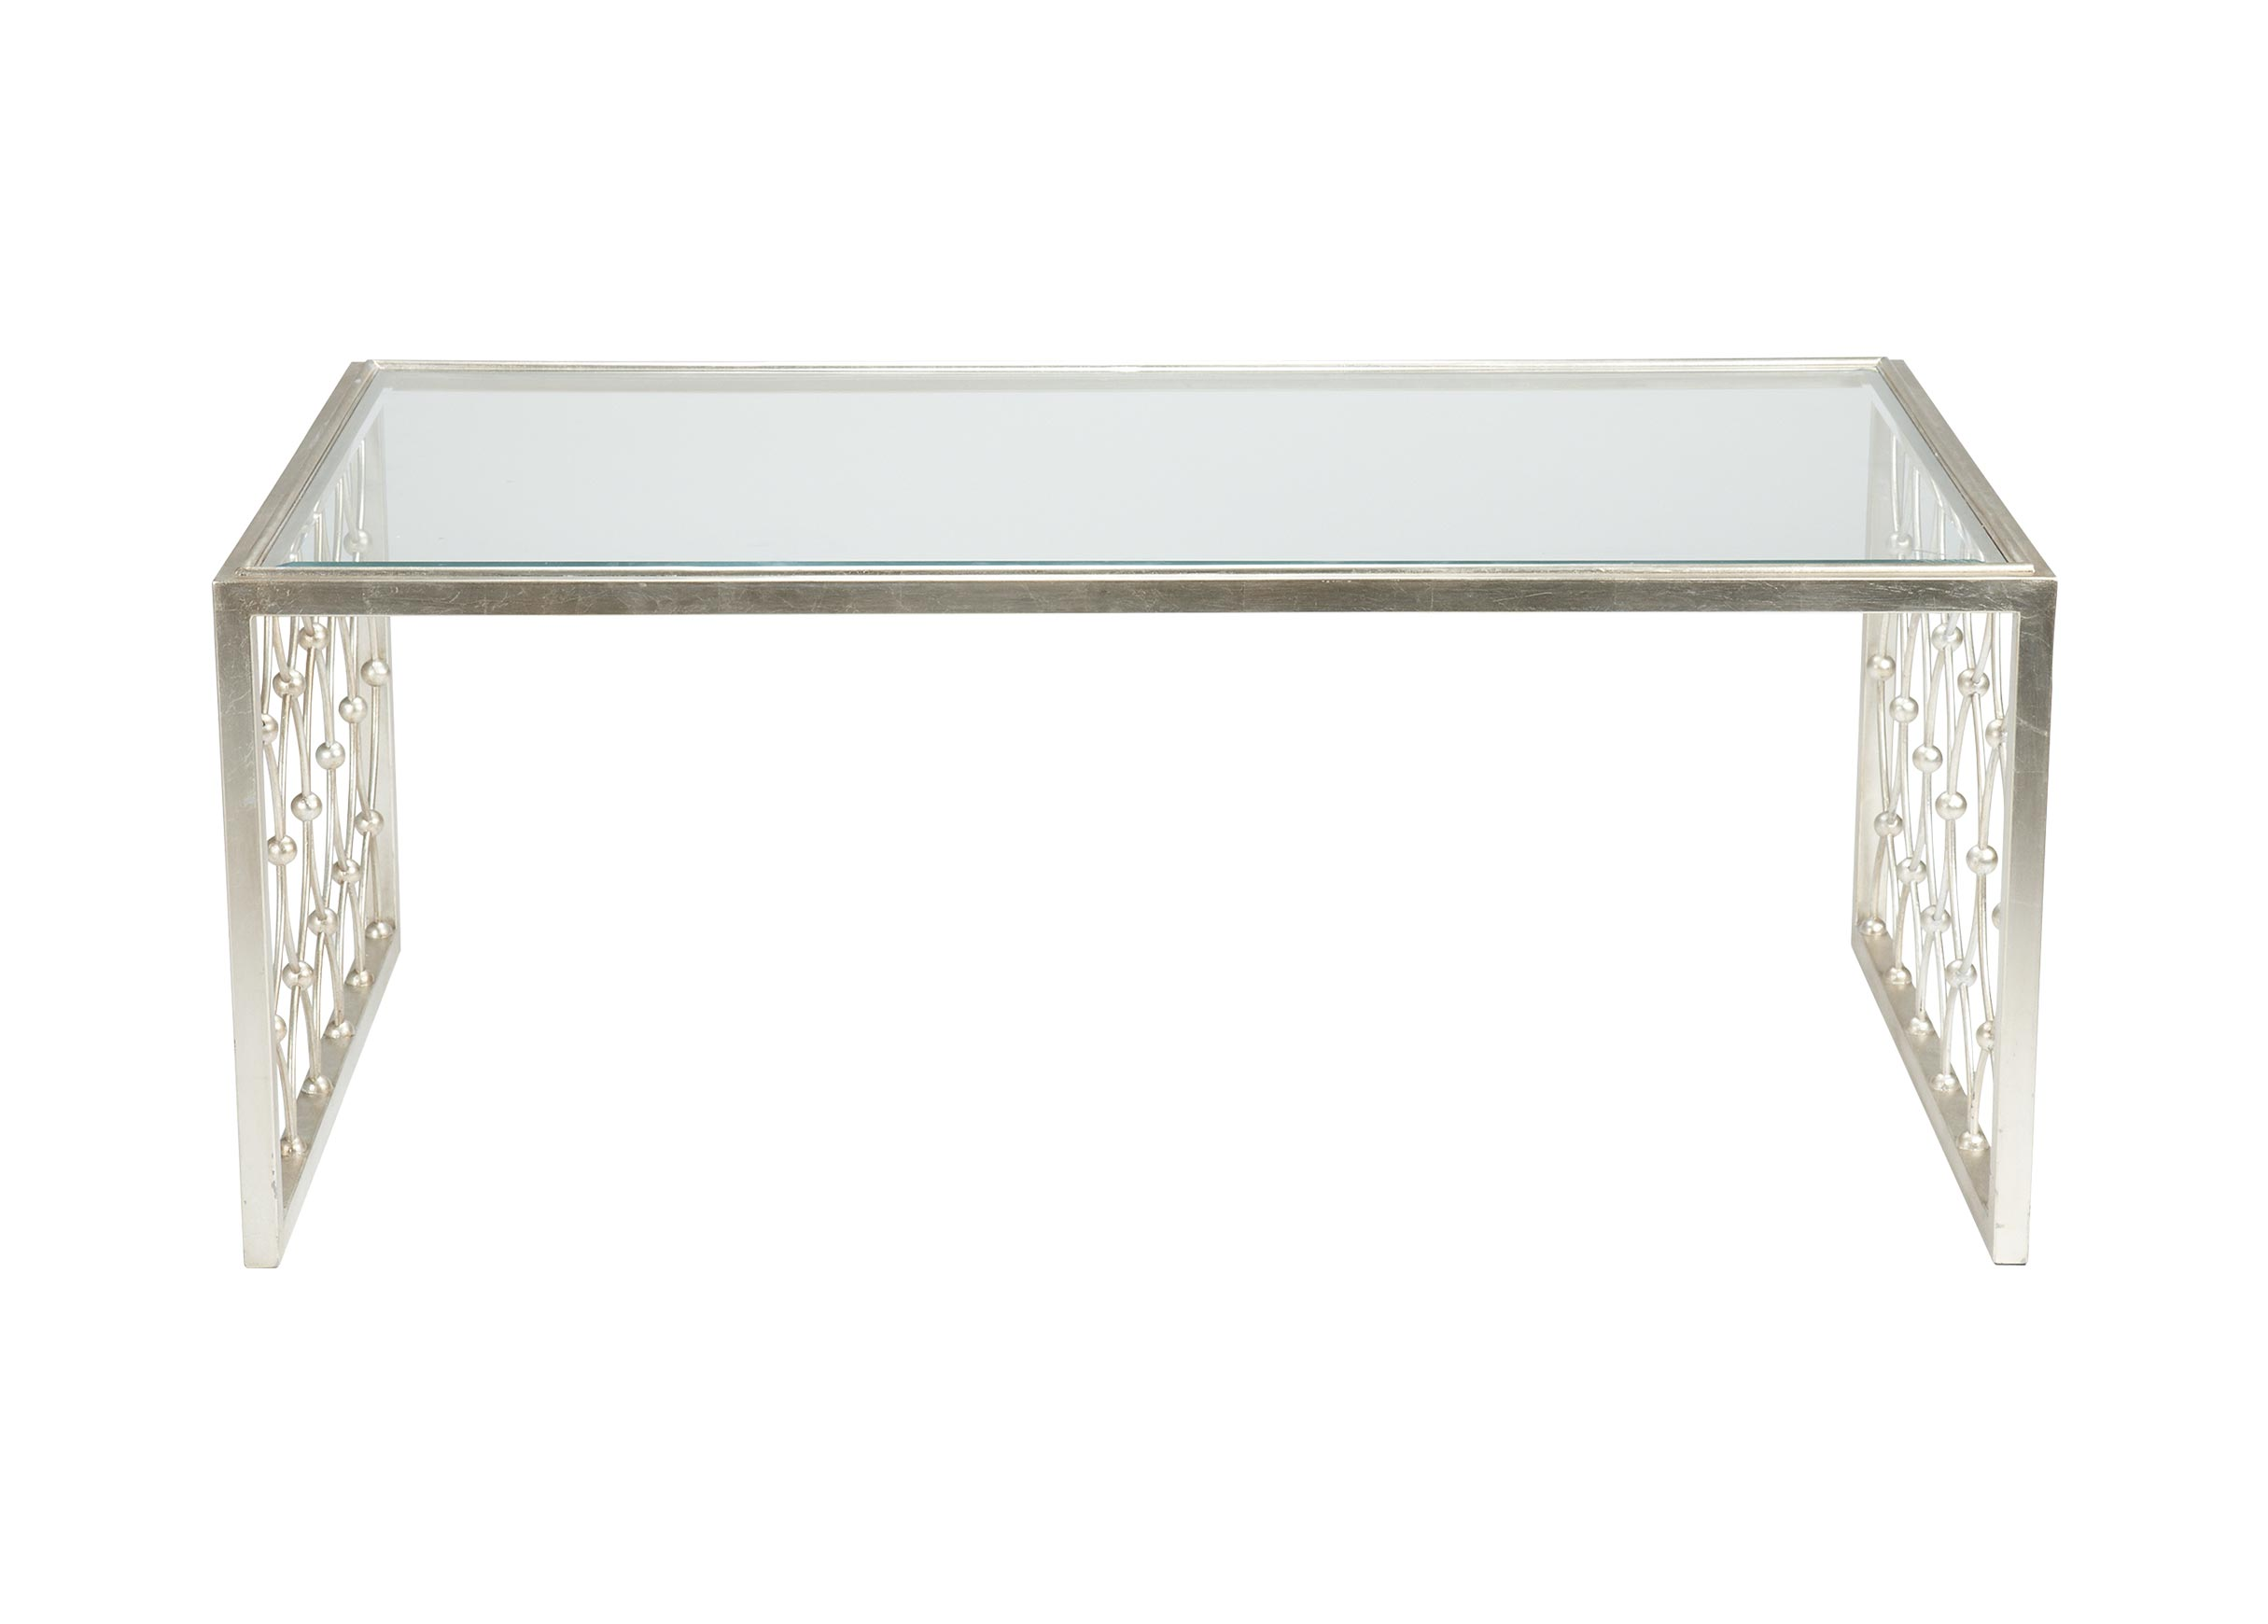 hawthorne coffee table tables ethan allen front glass top accent large gray monarch hall console ashley furniture and end sets white linen runner target toulon extra tall lamps